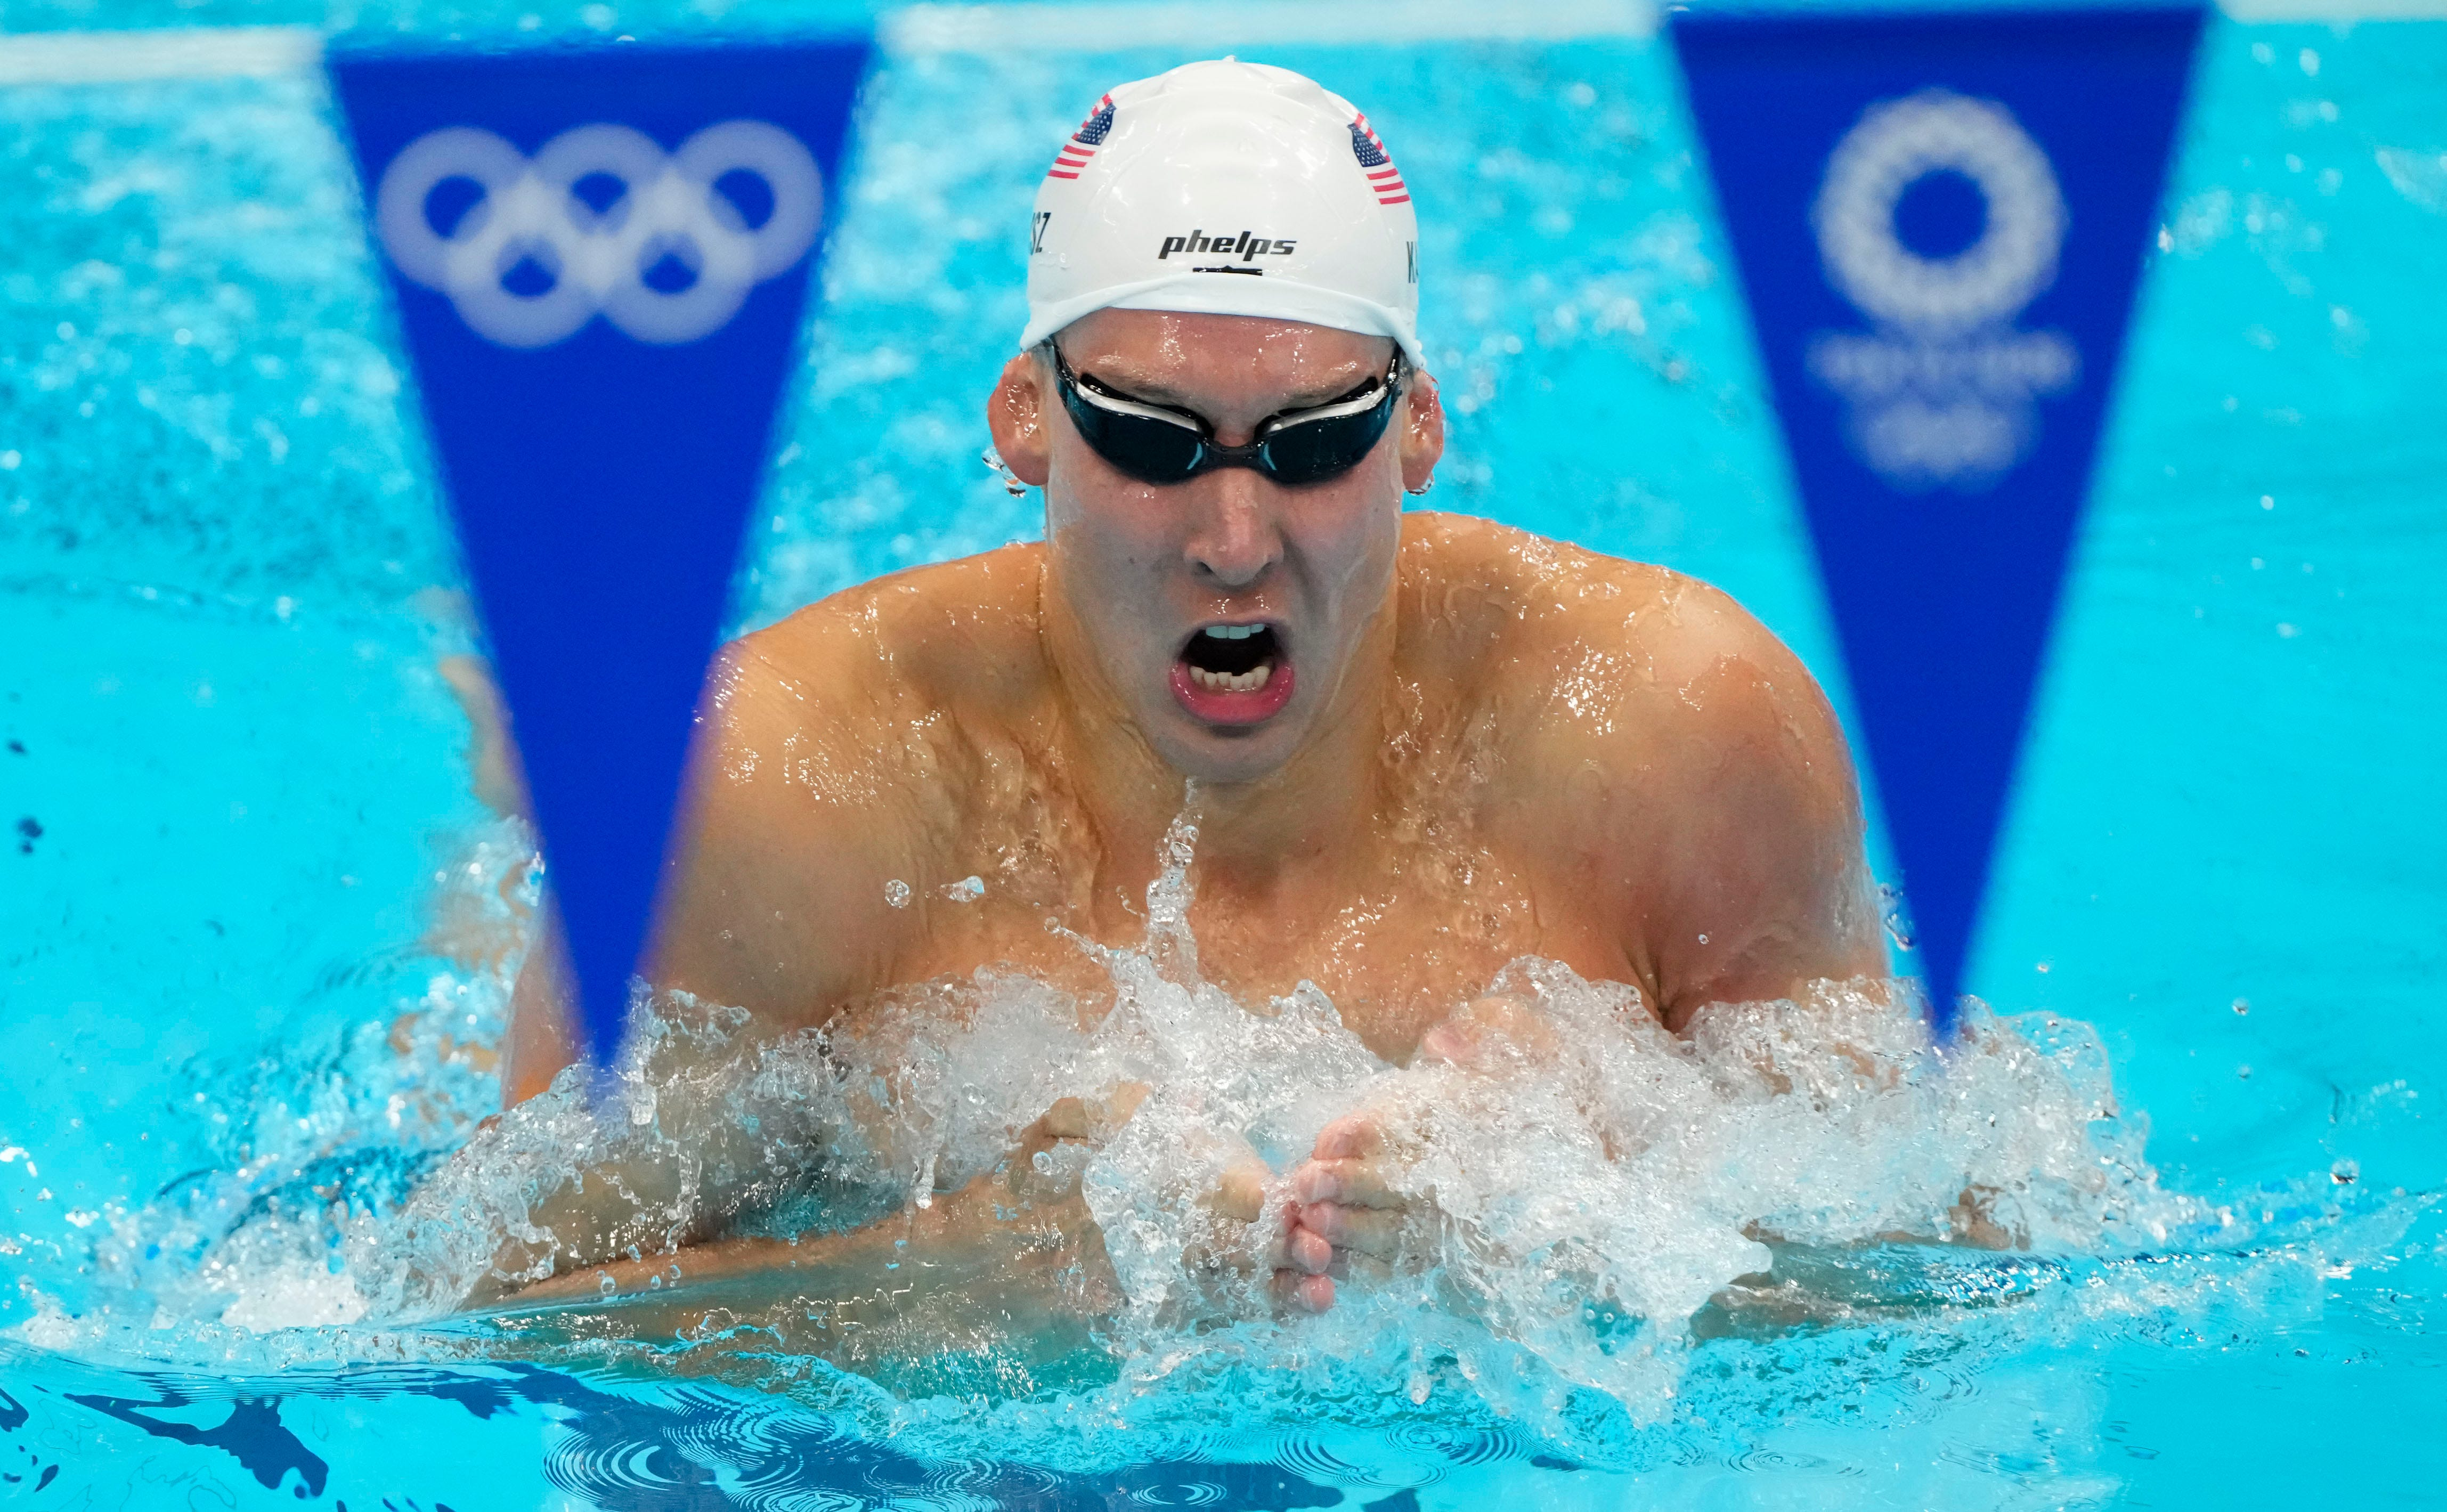 Team USA wins its first medals of the Tokyo Olympics: Swimmer Chase Kalisz takes gold in 400 IM